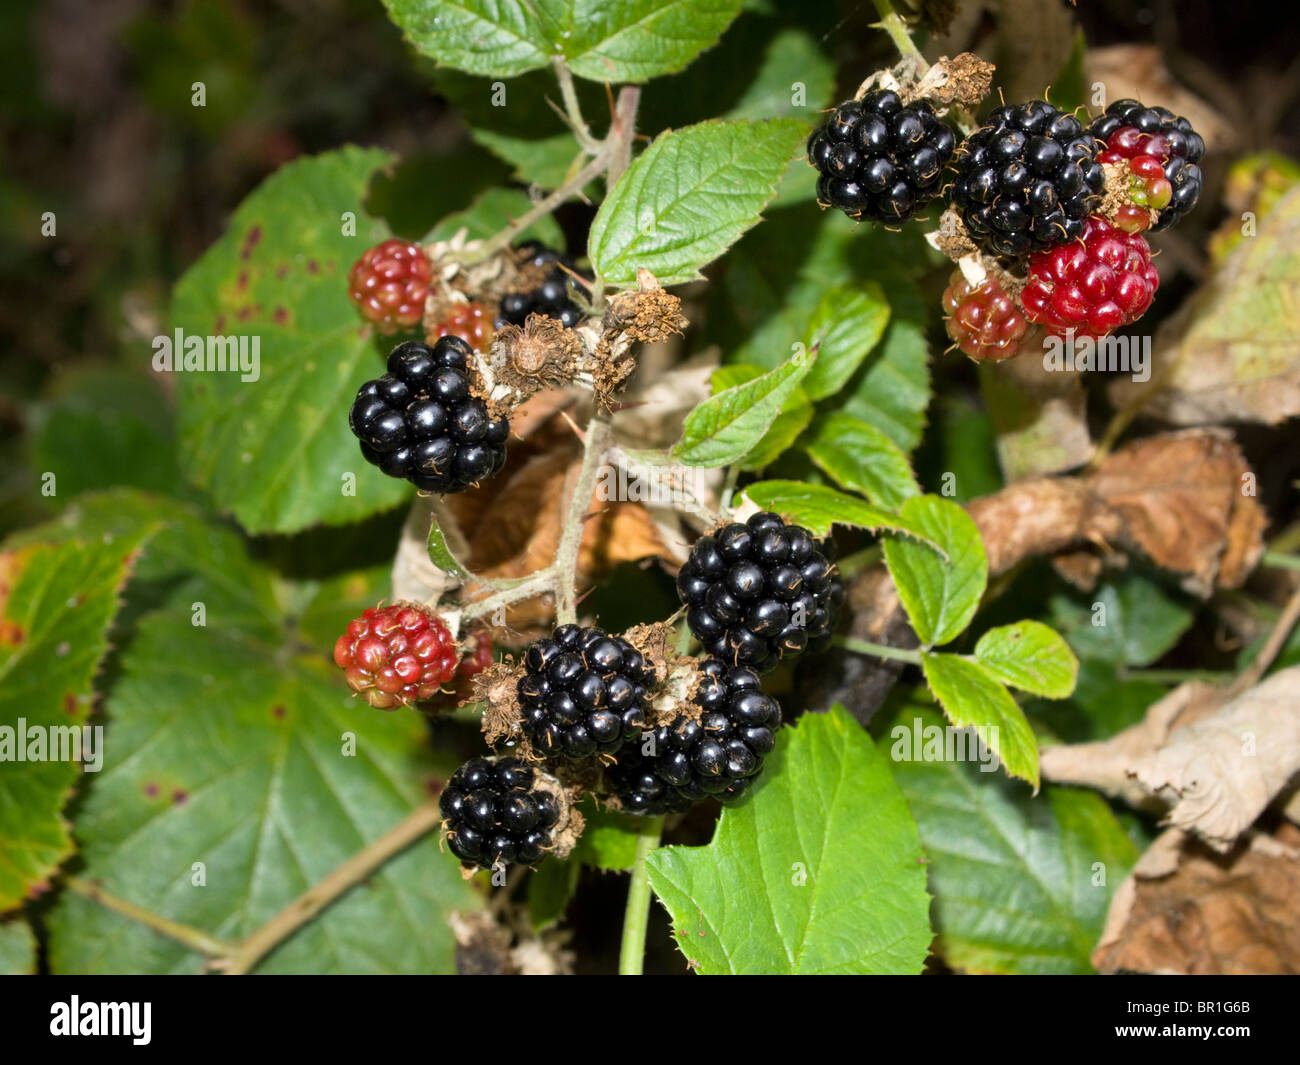 Blackberry bush with ripe and unripe blackberries - Stock Image